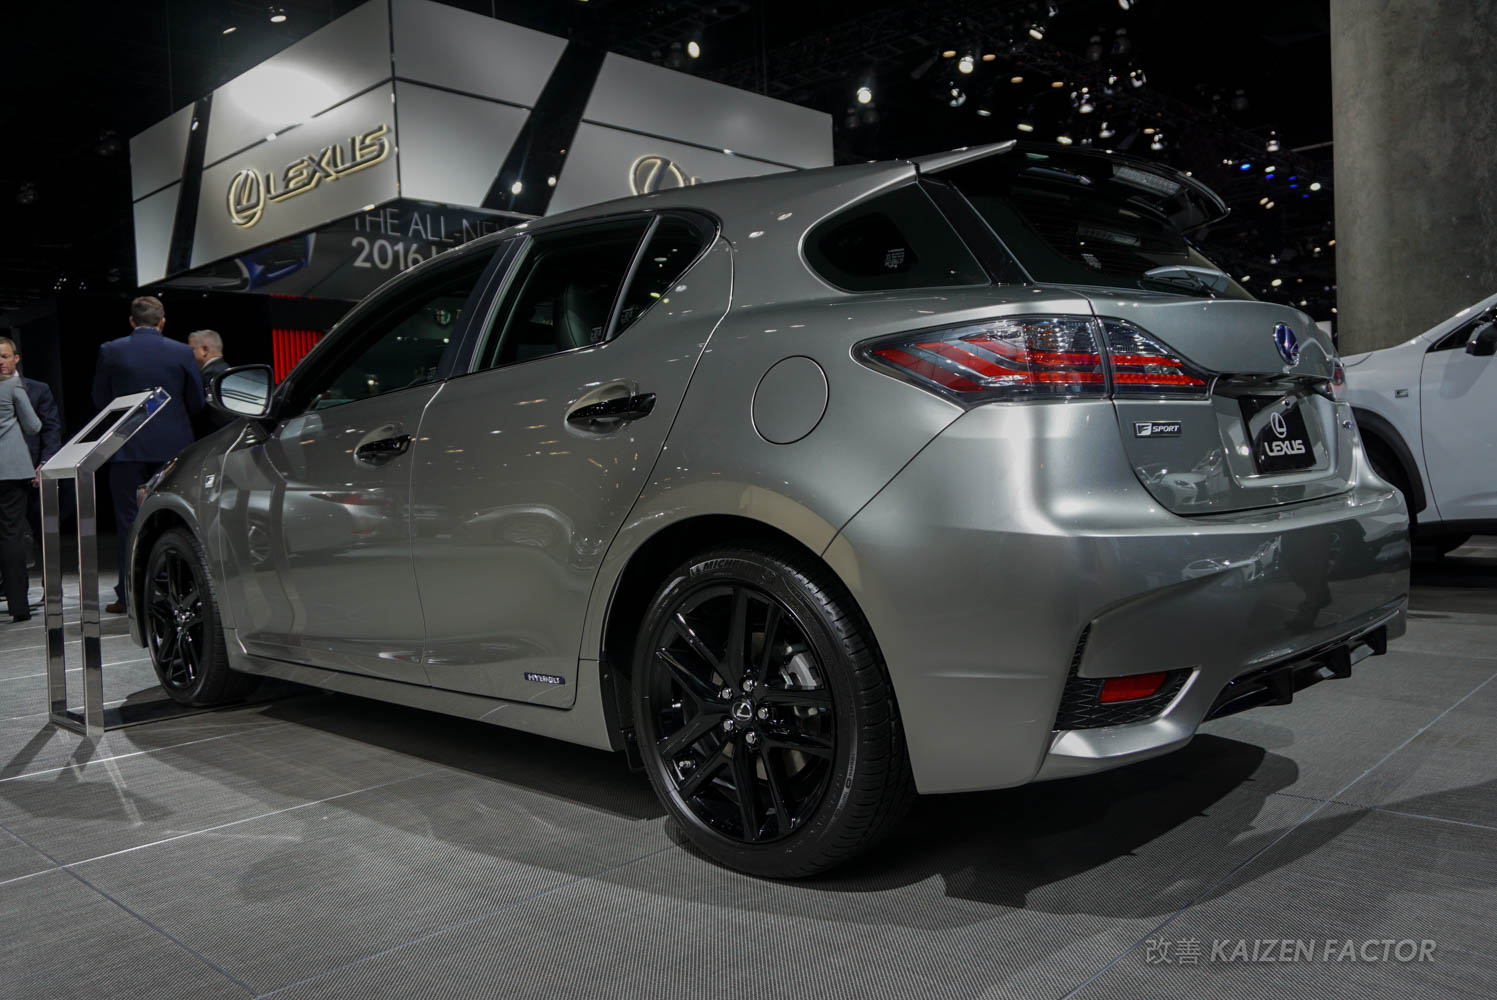 Lexus Ct200h F Sport For Sale >> Lexus Usa Reveals Special Edition Ct 200h F Sport In Atomic